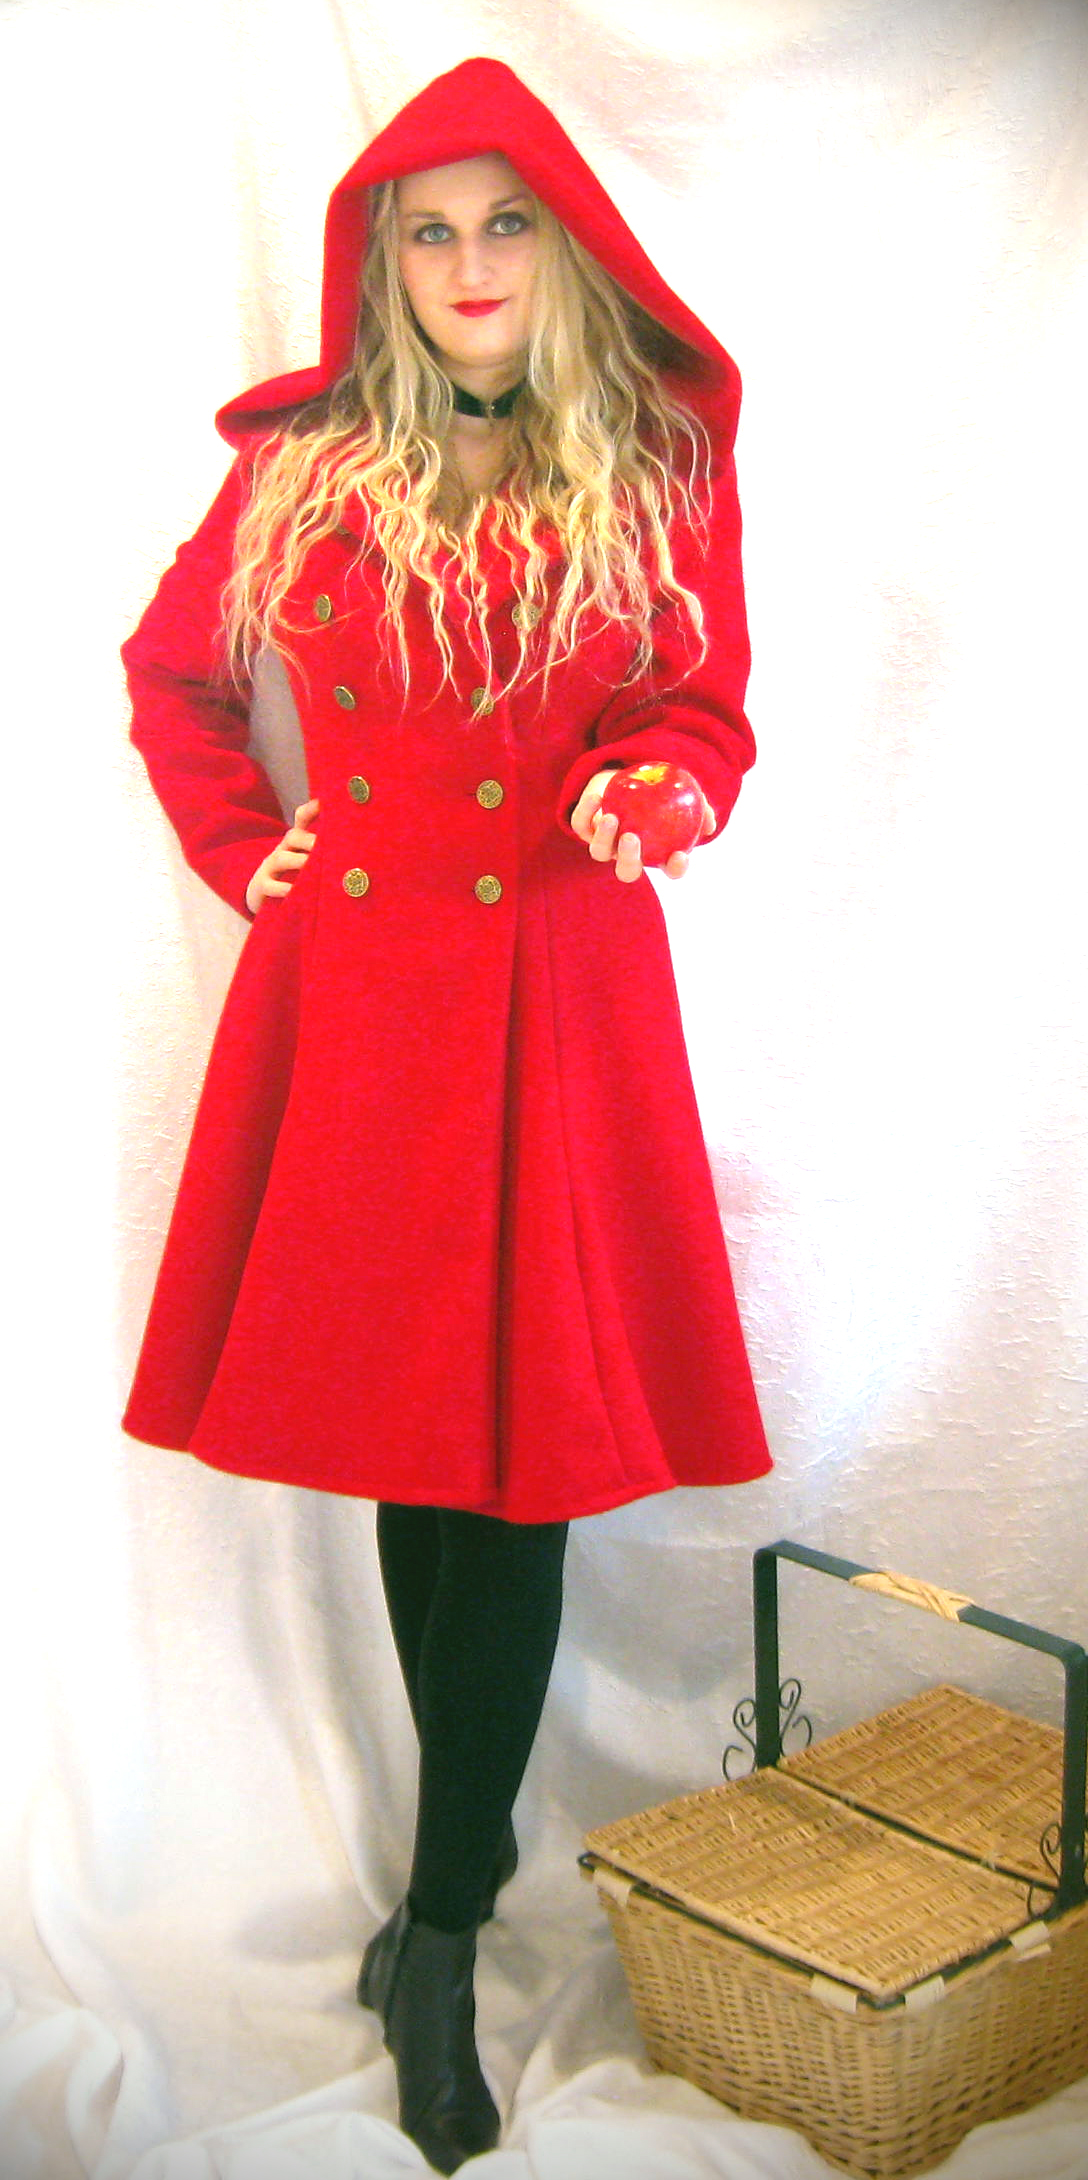 Red Riding Hood coat by ThreeRingCinema on DeviantArt